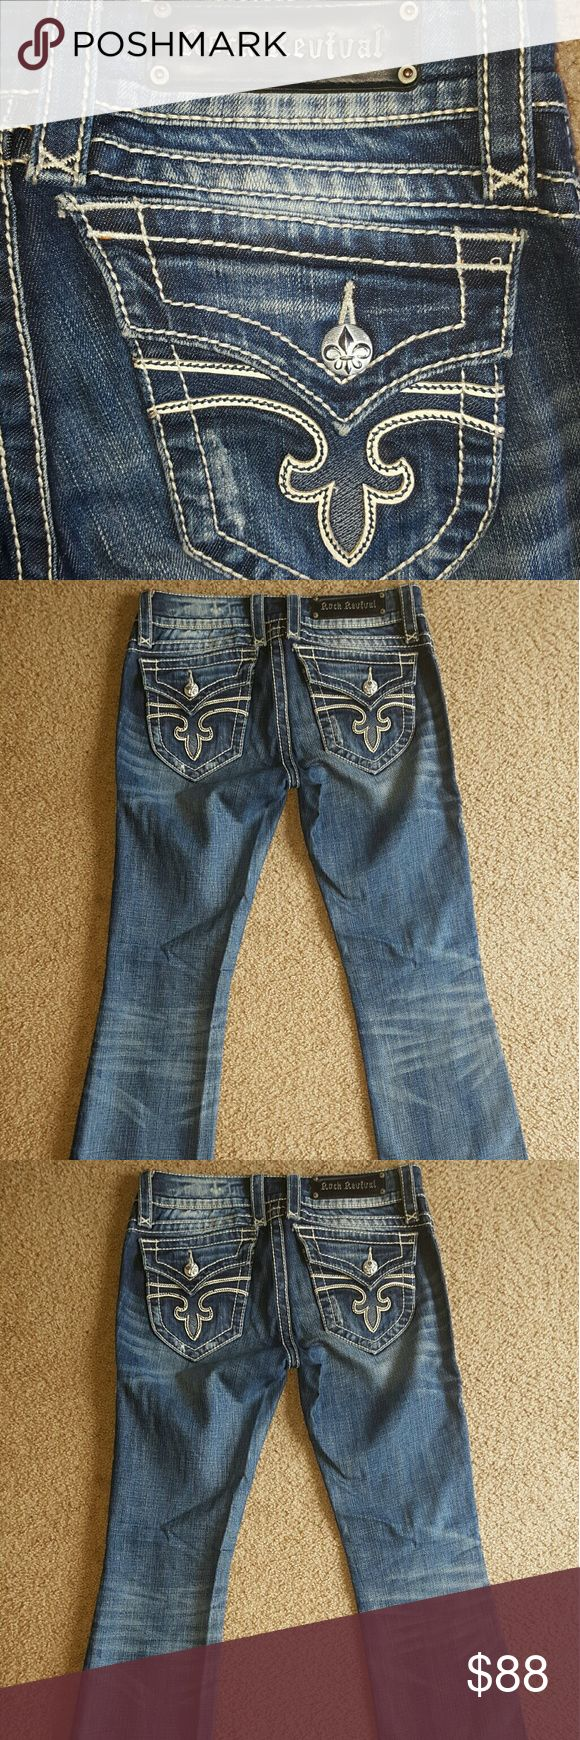 ROCK REVIVAL Womens Jeans pre-worn, good condition not heavily worn, no rips, stains, missing buttons. Rock Revival Jeans Straight Leg